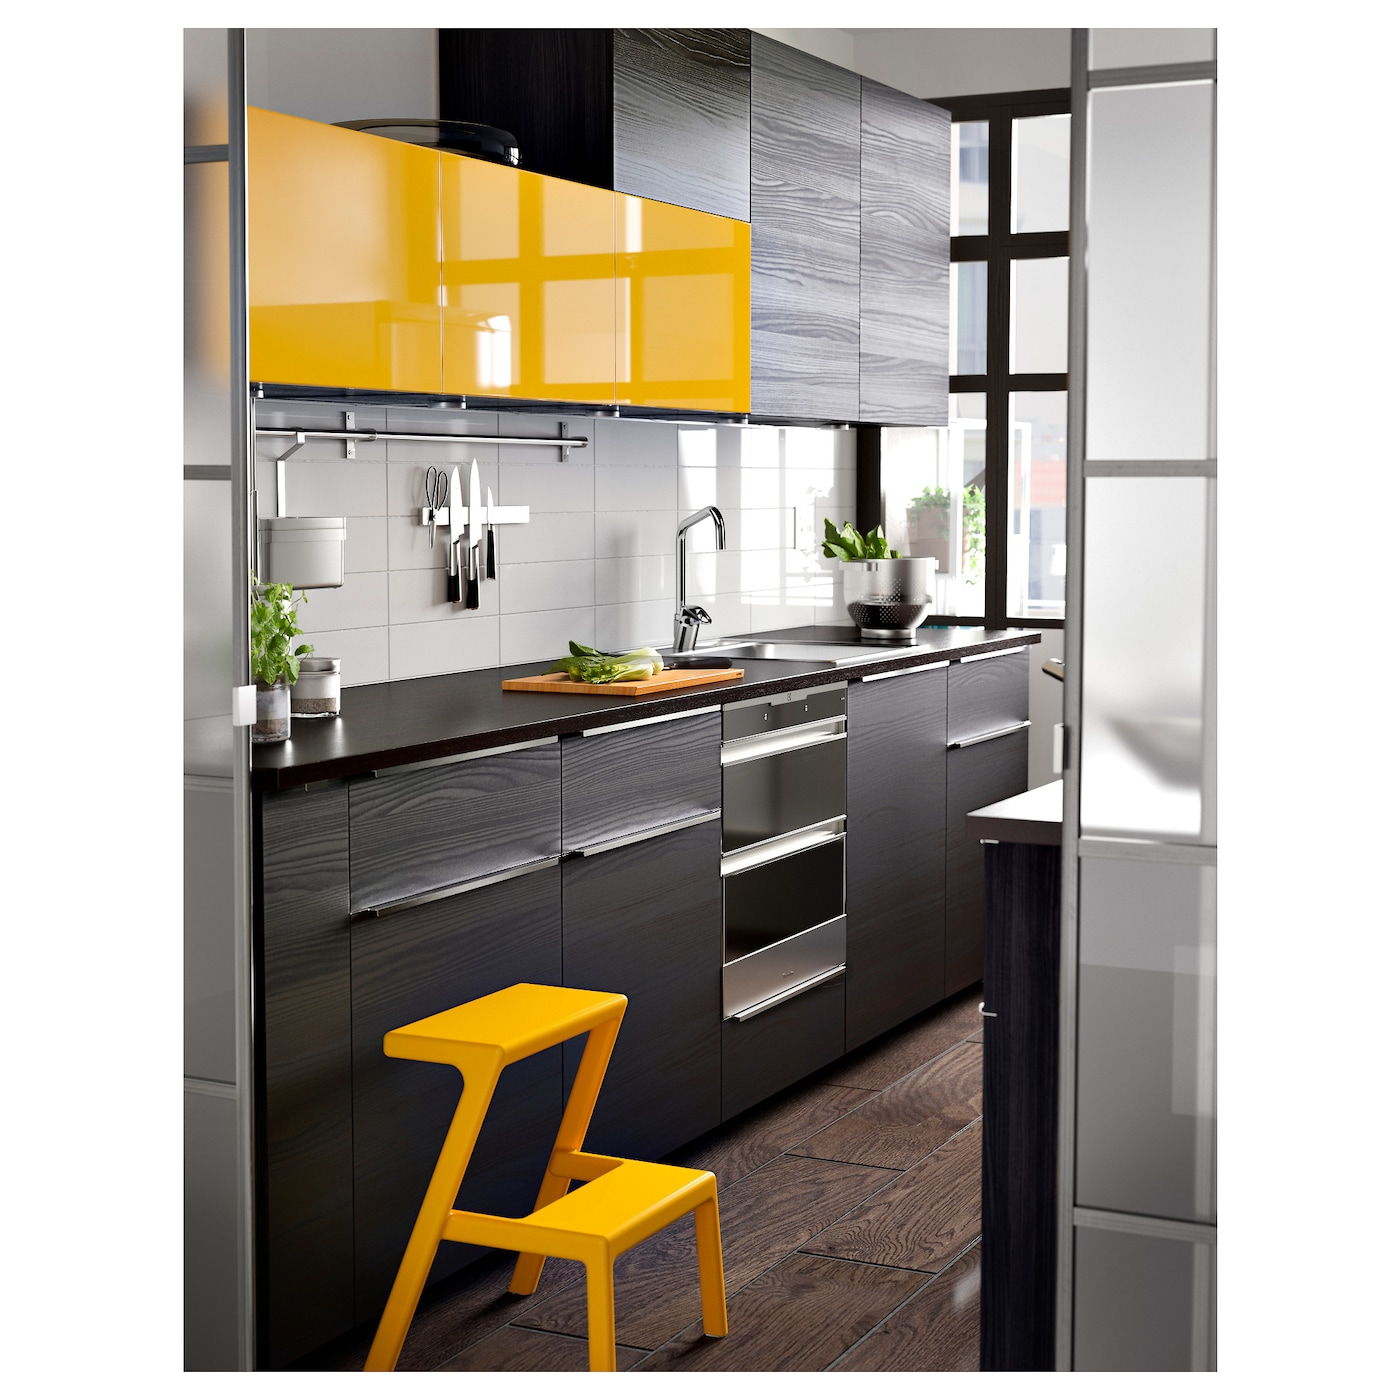 Ikea Yellow Kitchen Cabinets: TINGSRYD Drawer Front Wood Effect Black 60 X 20 Cm